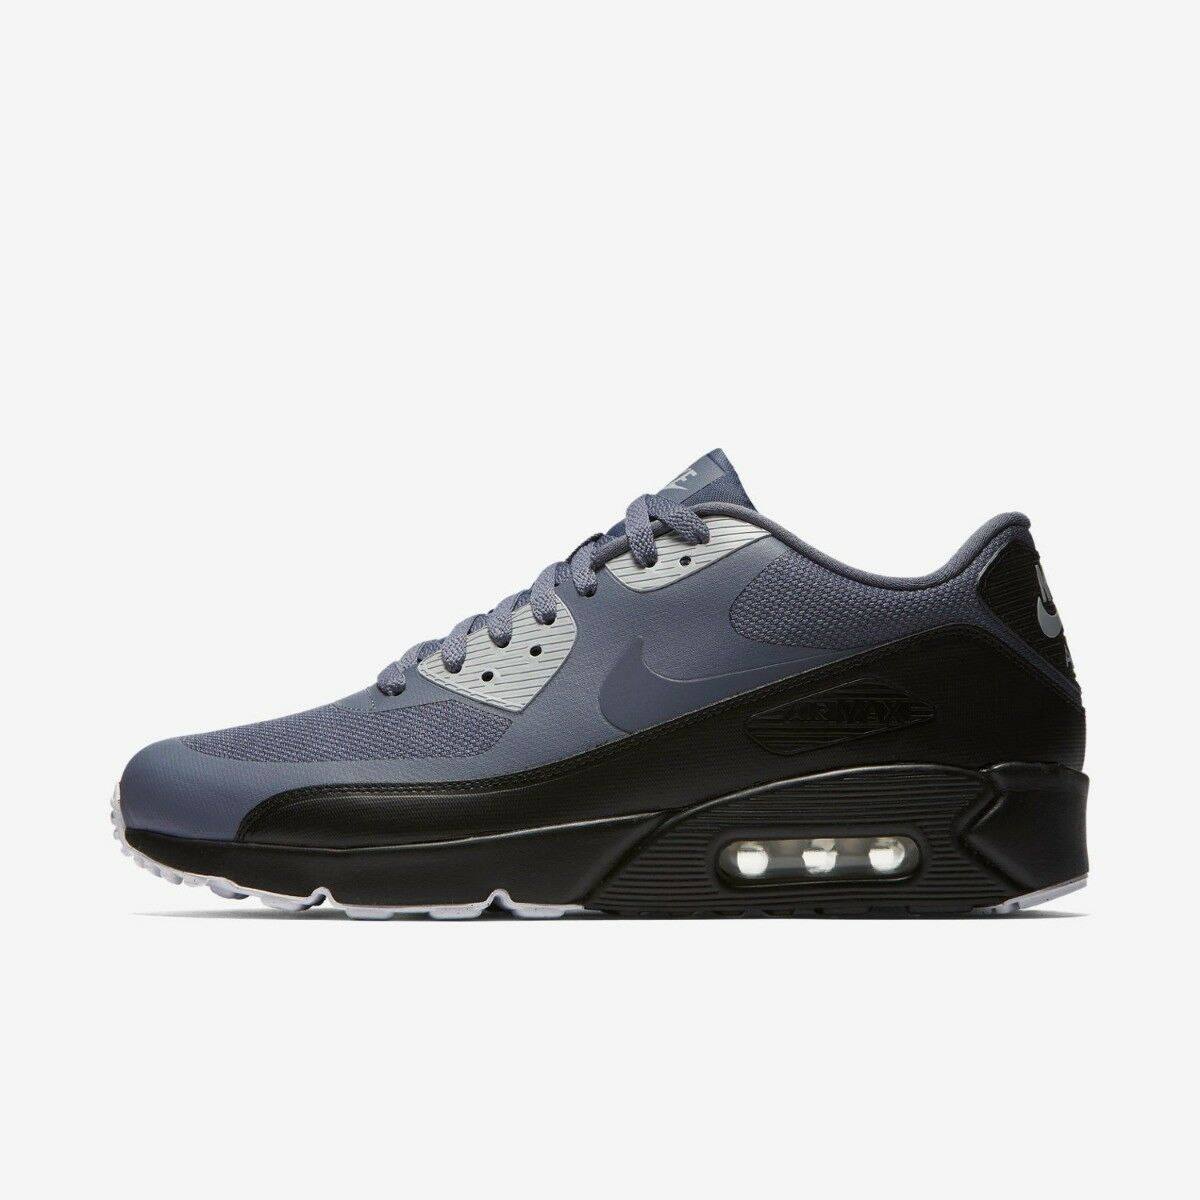 09dca9ada534ab ... where can i buy nike air max ultra zapatilla 2.0 esencial hombre  running zapatilla ultra de